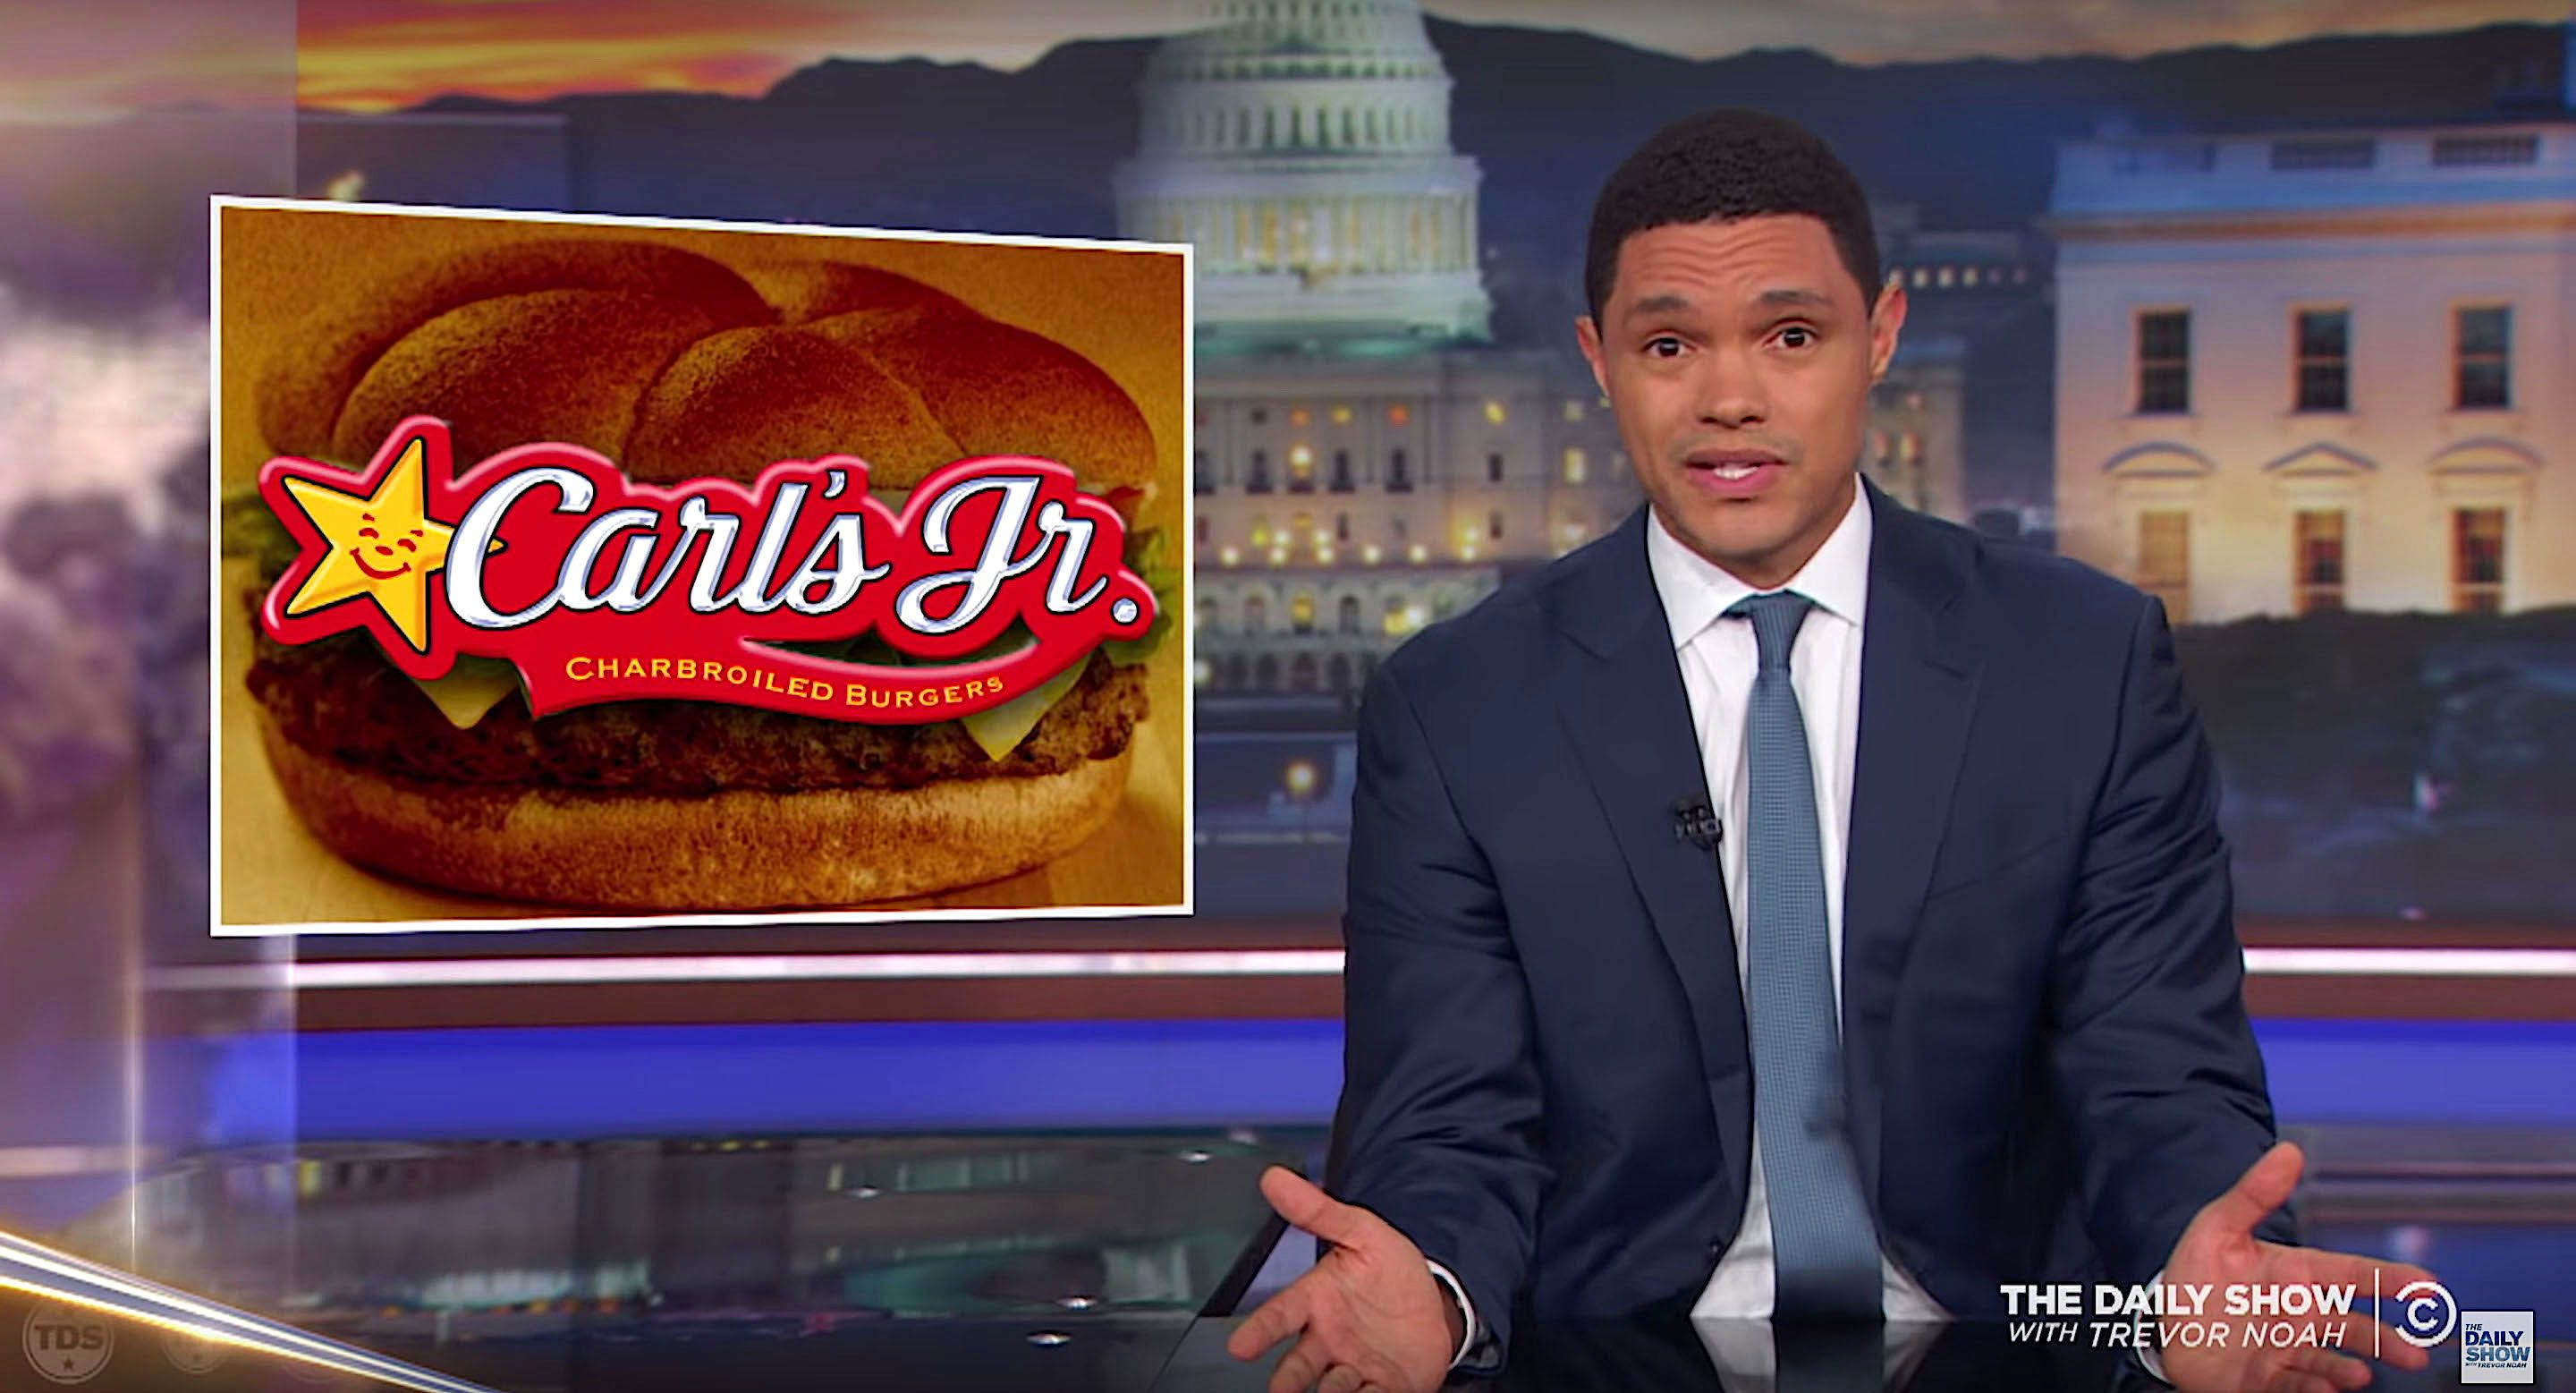 Trevor Noah of The Daily Show asks Where could Kirstjen Nielsen go to eat